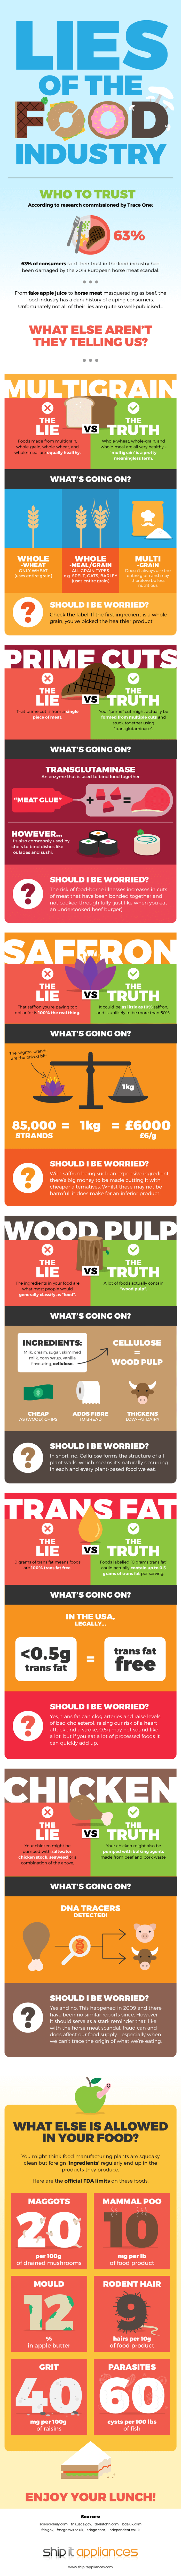 The Food Industry is Lying To Us! - Infographic